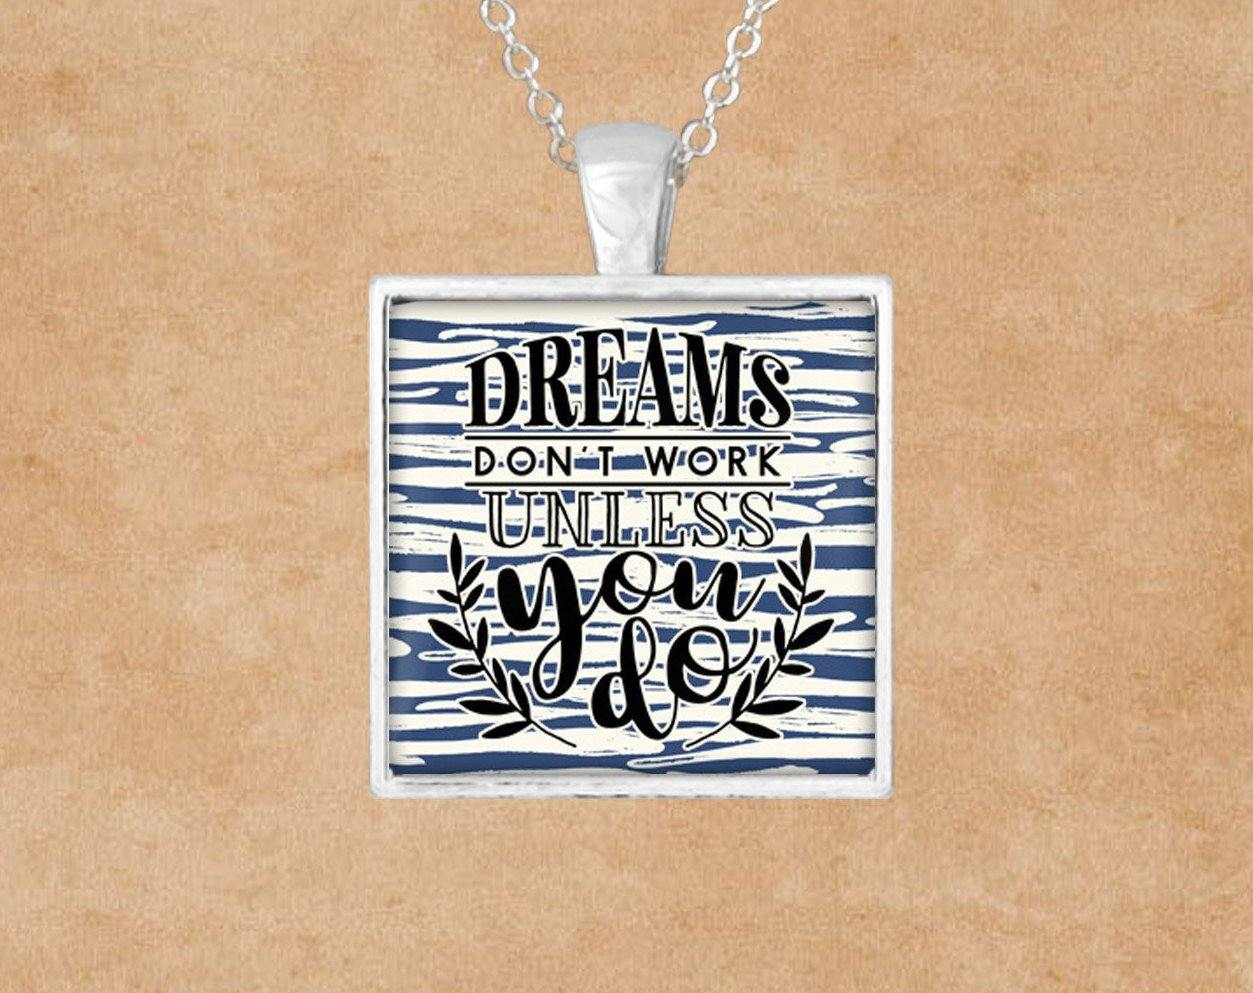 Pendants | Custom Jewelry | Personalized Jewelry | Pendant Necklace | Dreams | This and That Solutions | Personalized Gifts | Custom Home Décor